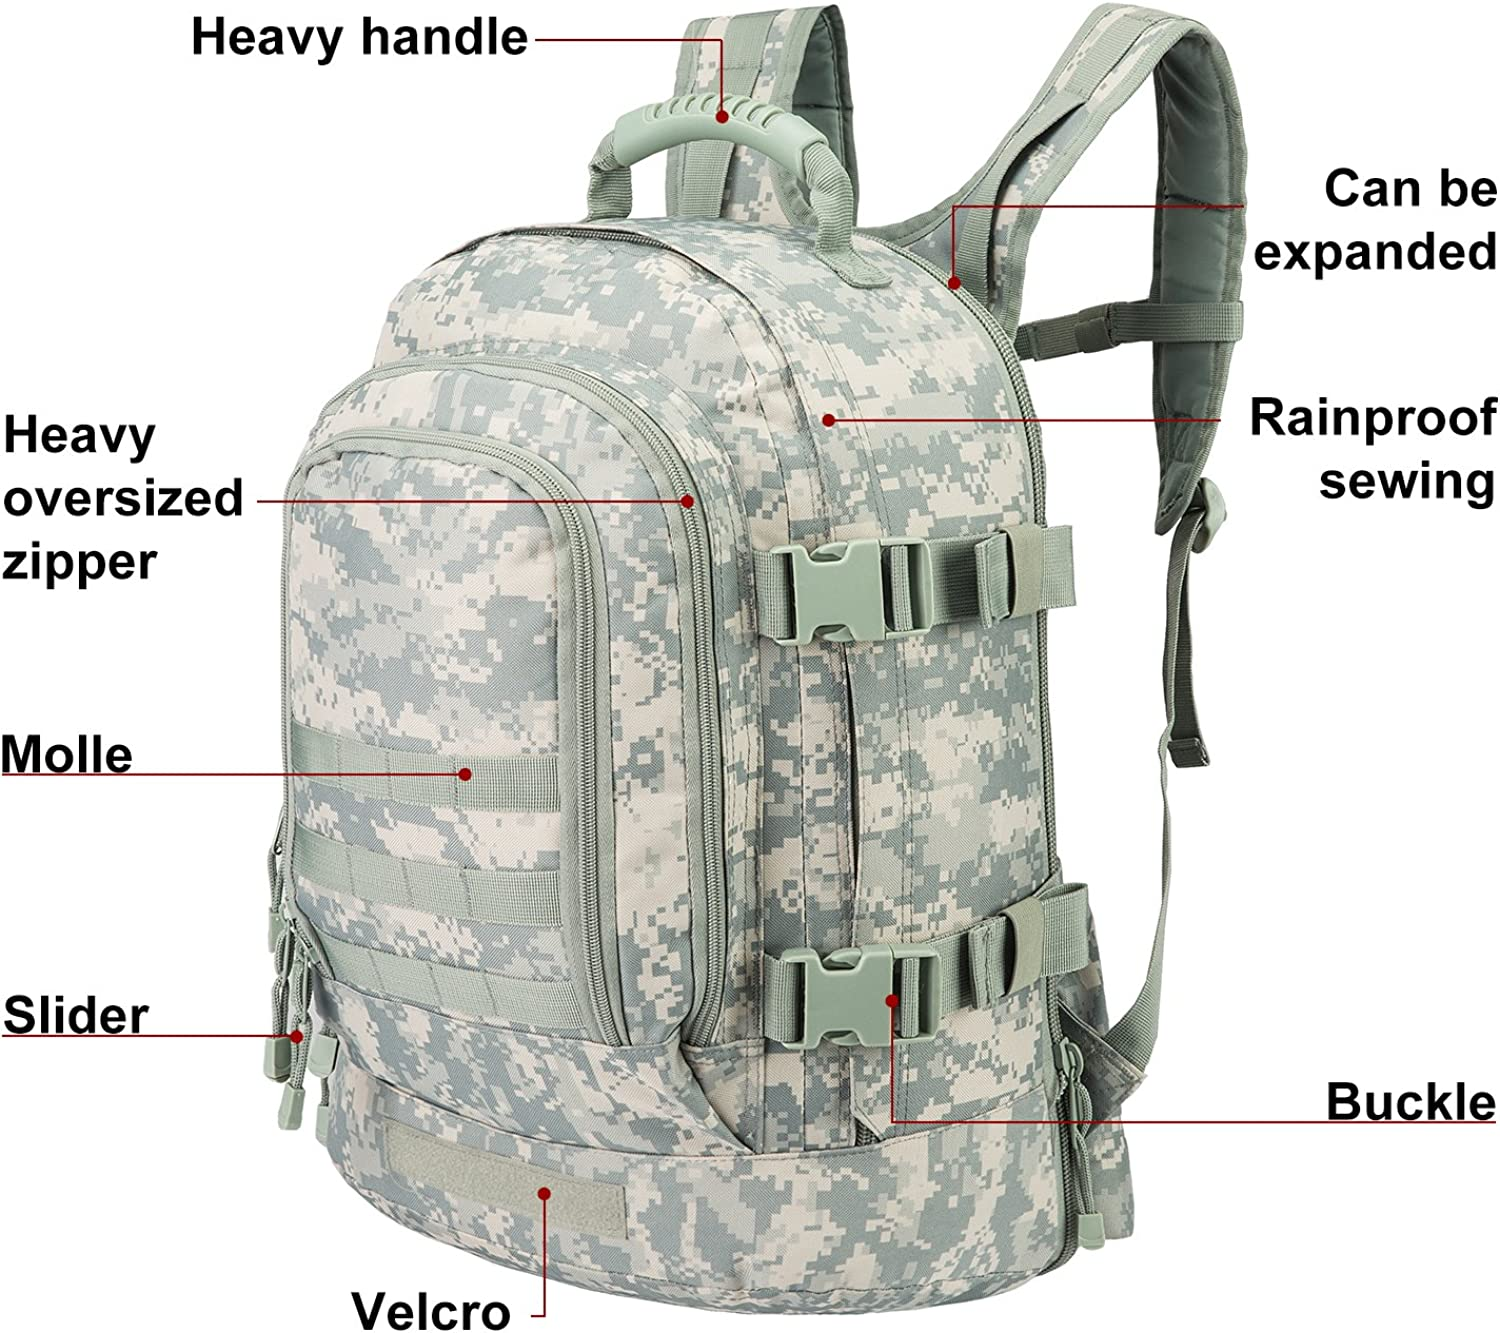 ANONE Camouflage High Capacity Backpack For Outdoor Hiking Lightweight Packable Durable Travel Backpack 55L L,Gray